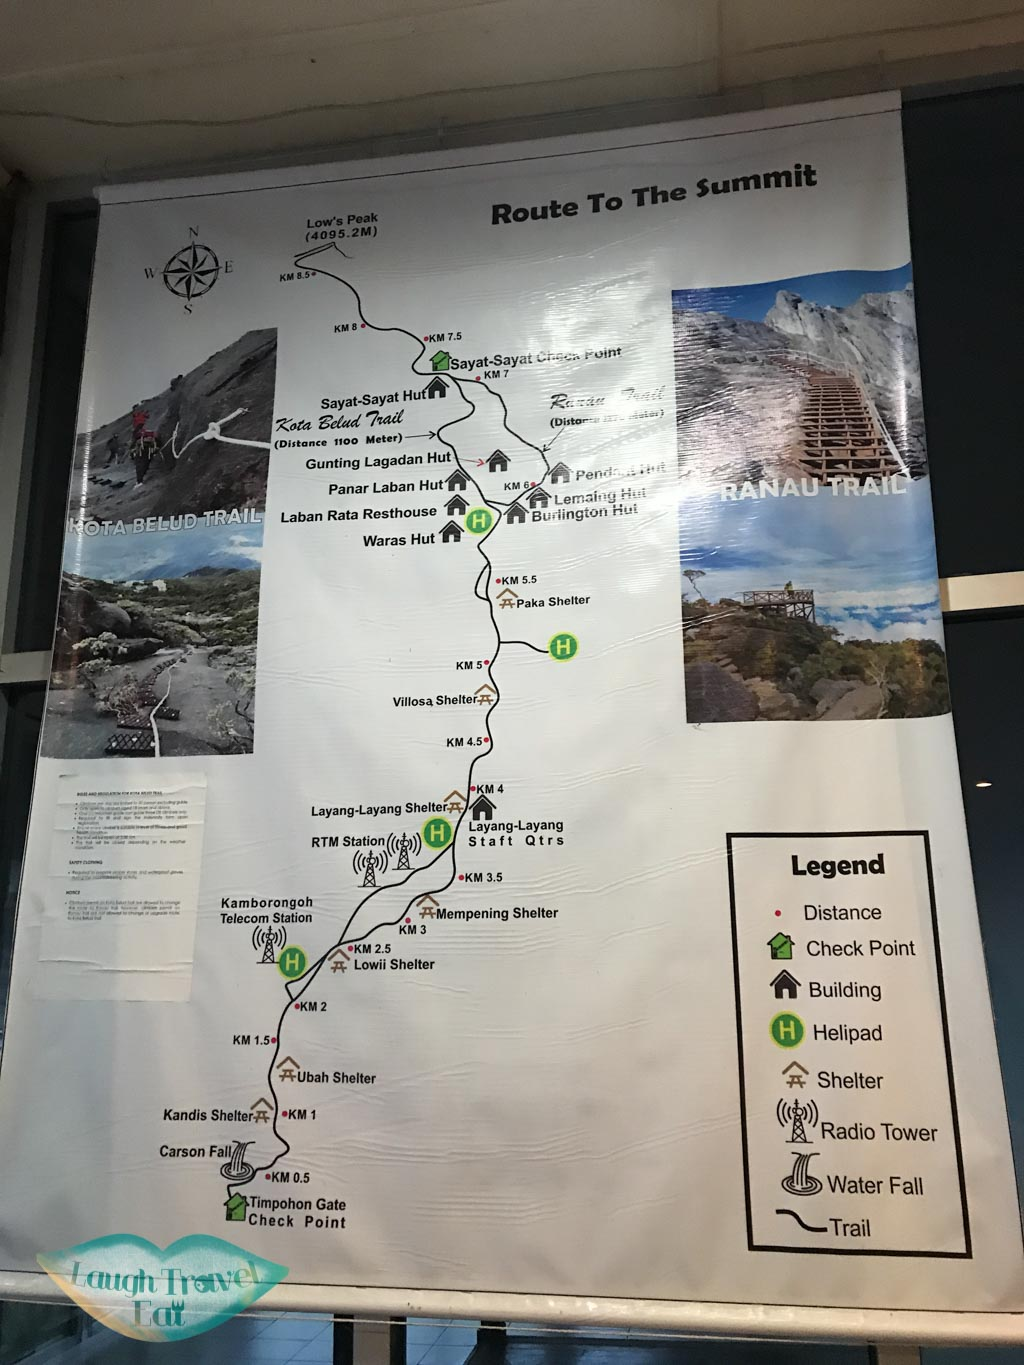 map-of-route-up-mount-kinabalu-sabah-malaysia-laugh-travel-eat